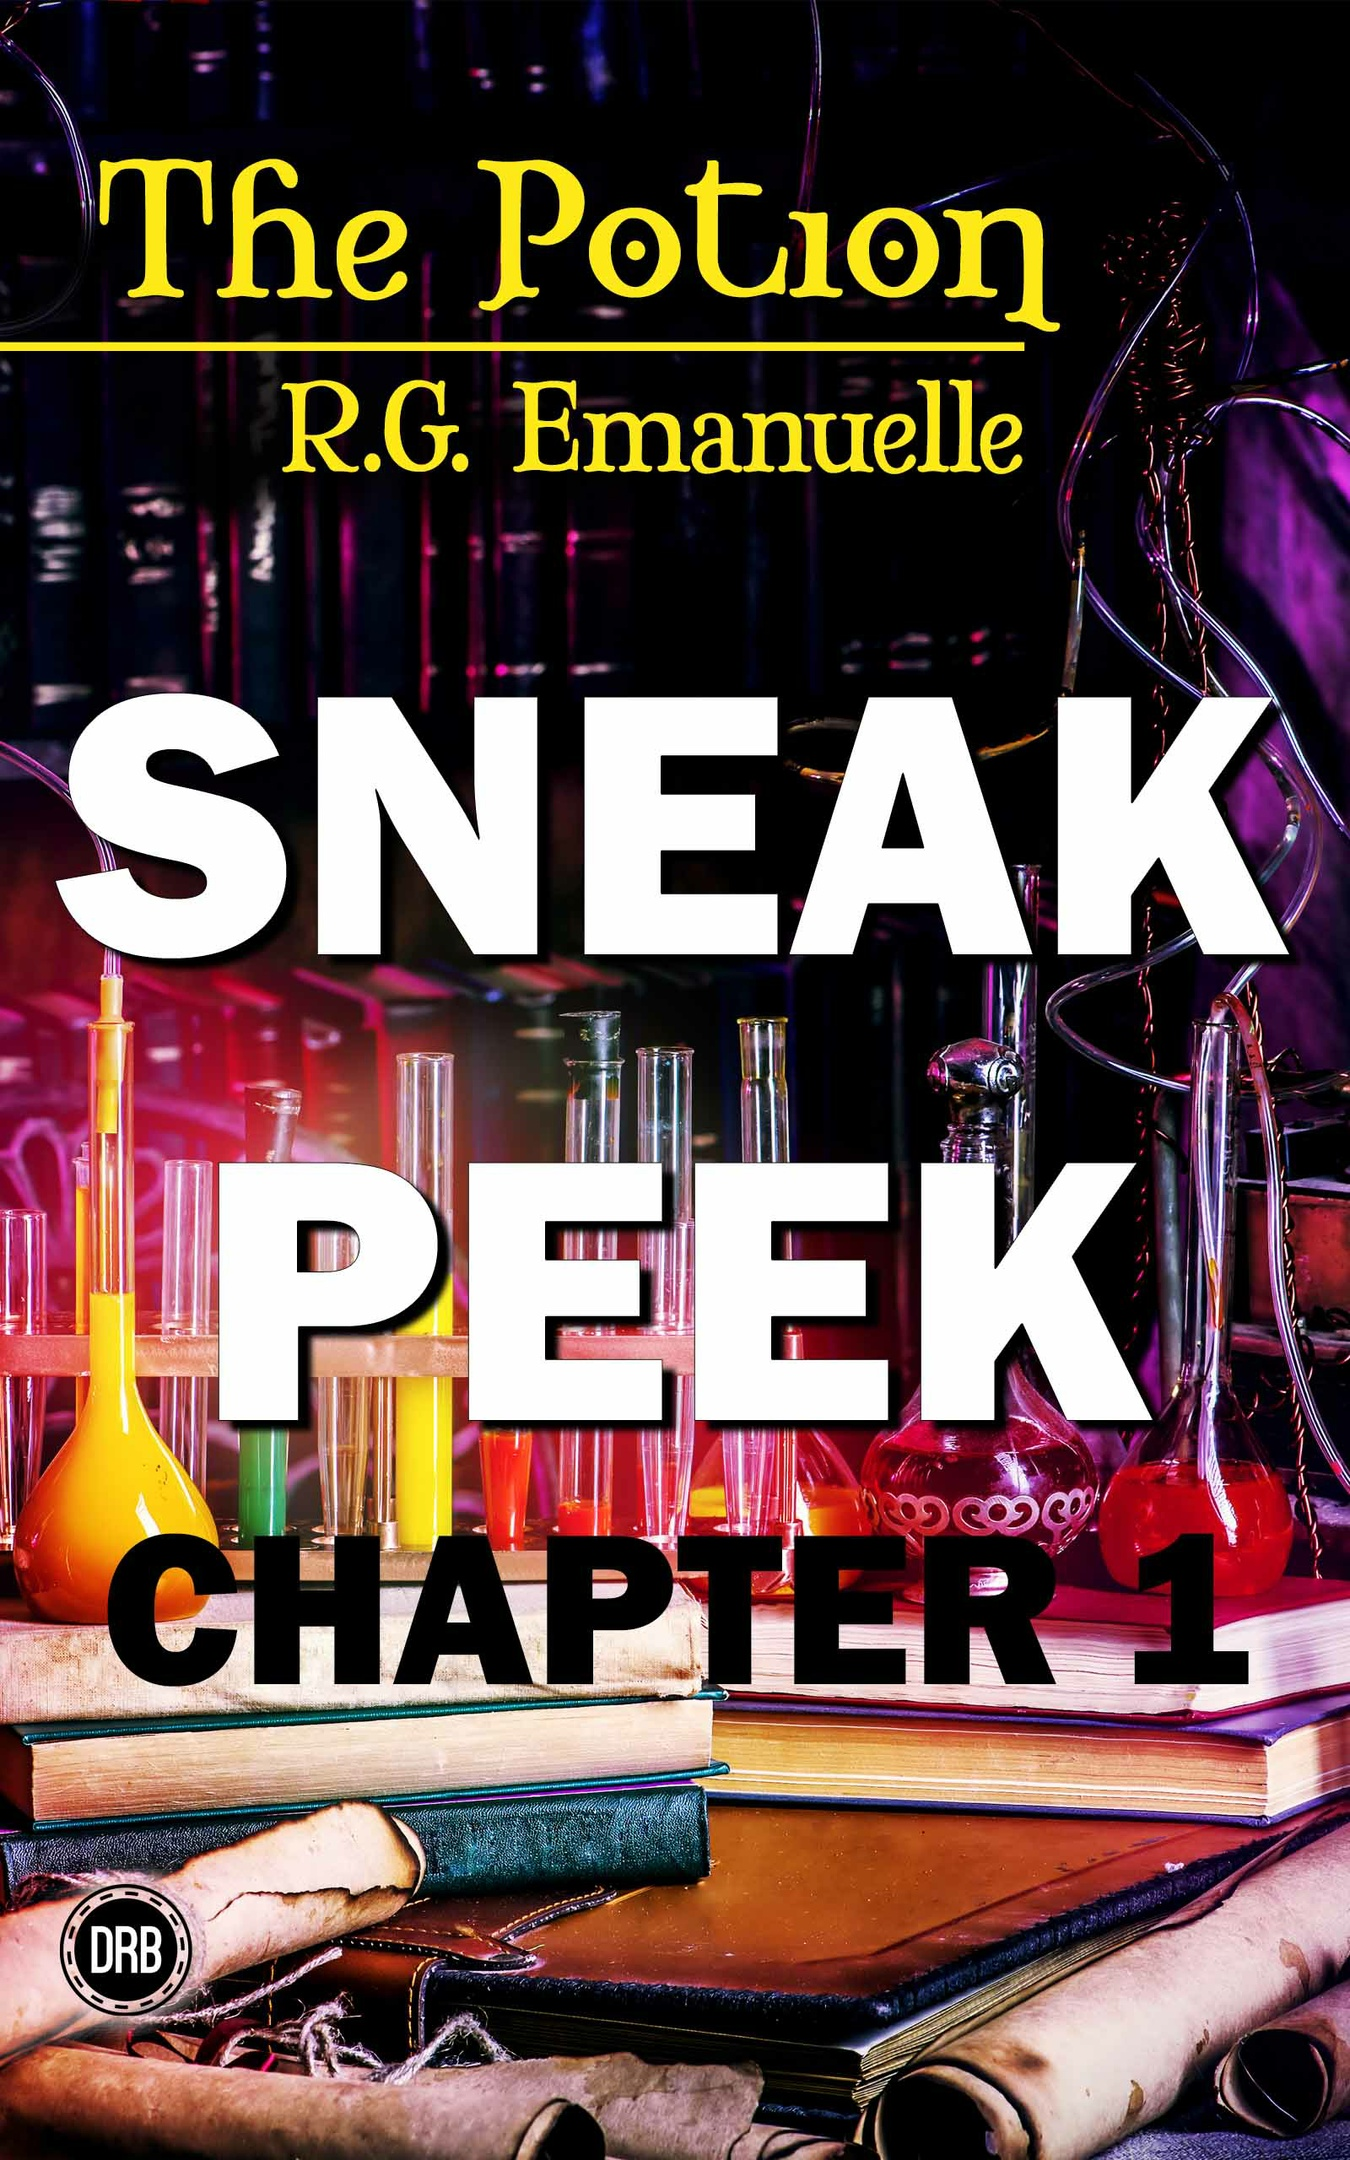 The Potion by R.G. Emanuelle - Chapter 1 Sneak Peek (epub)